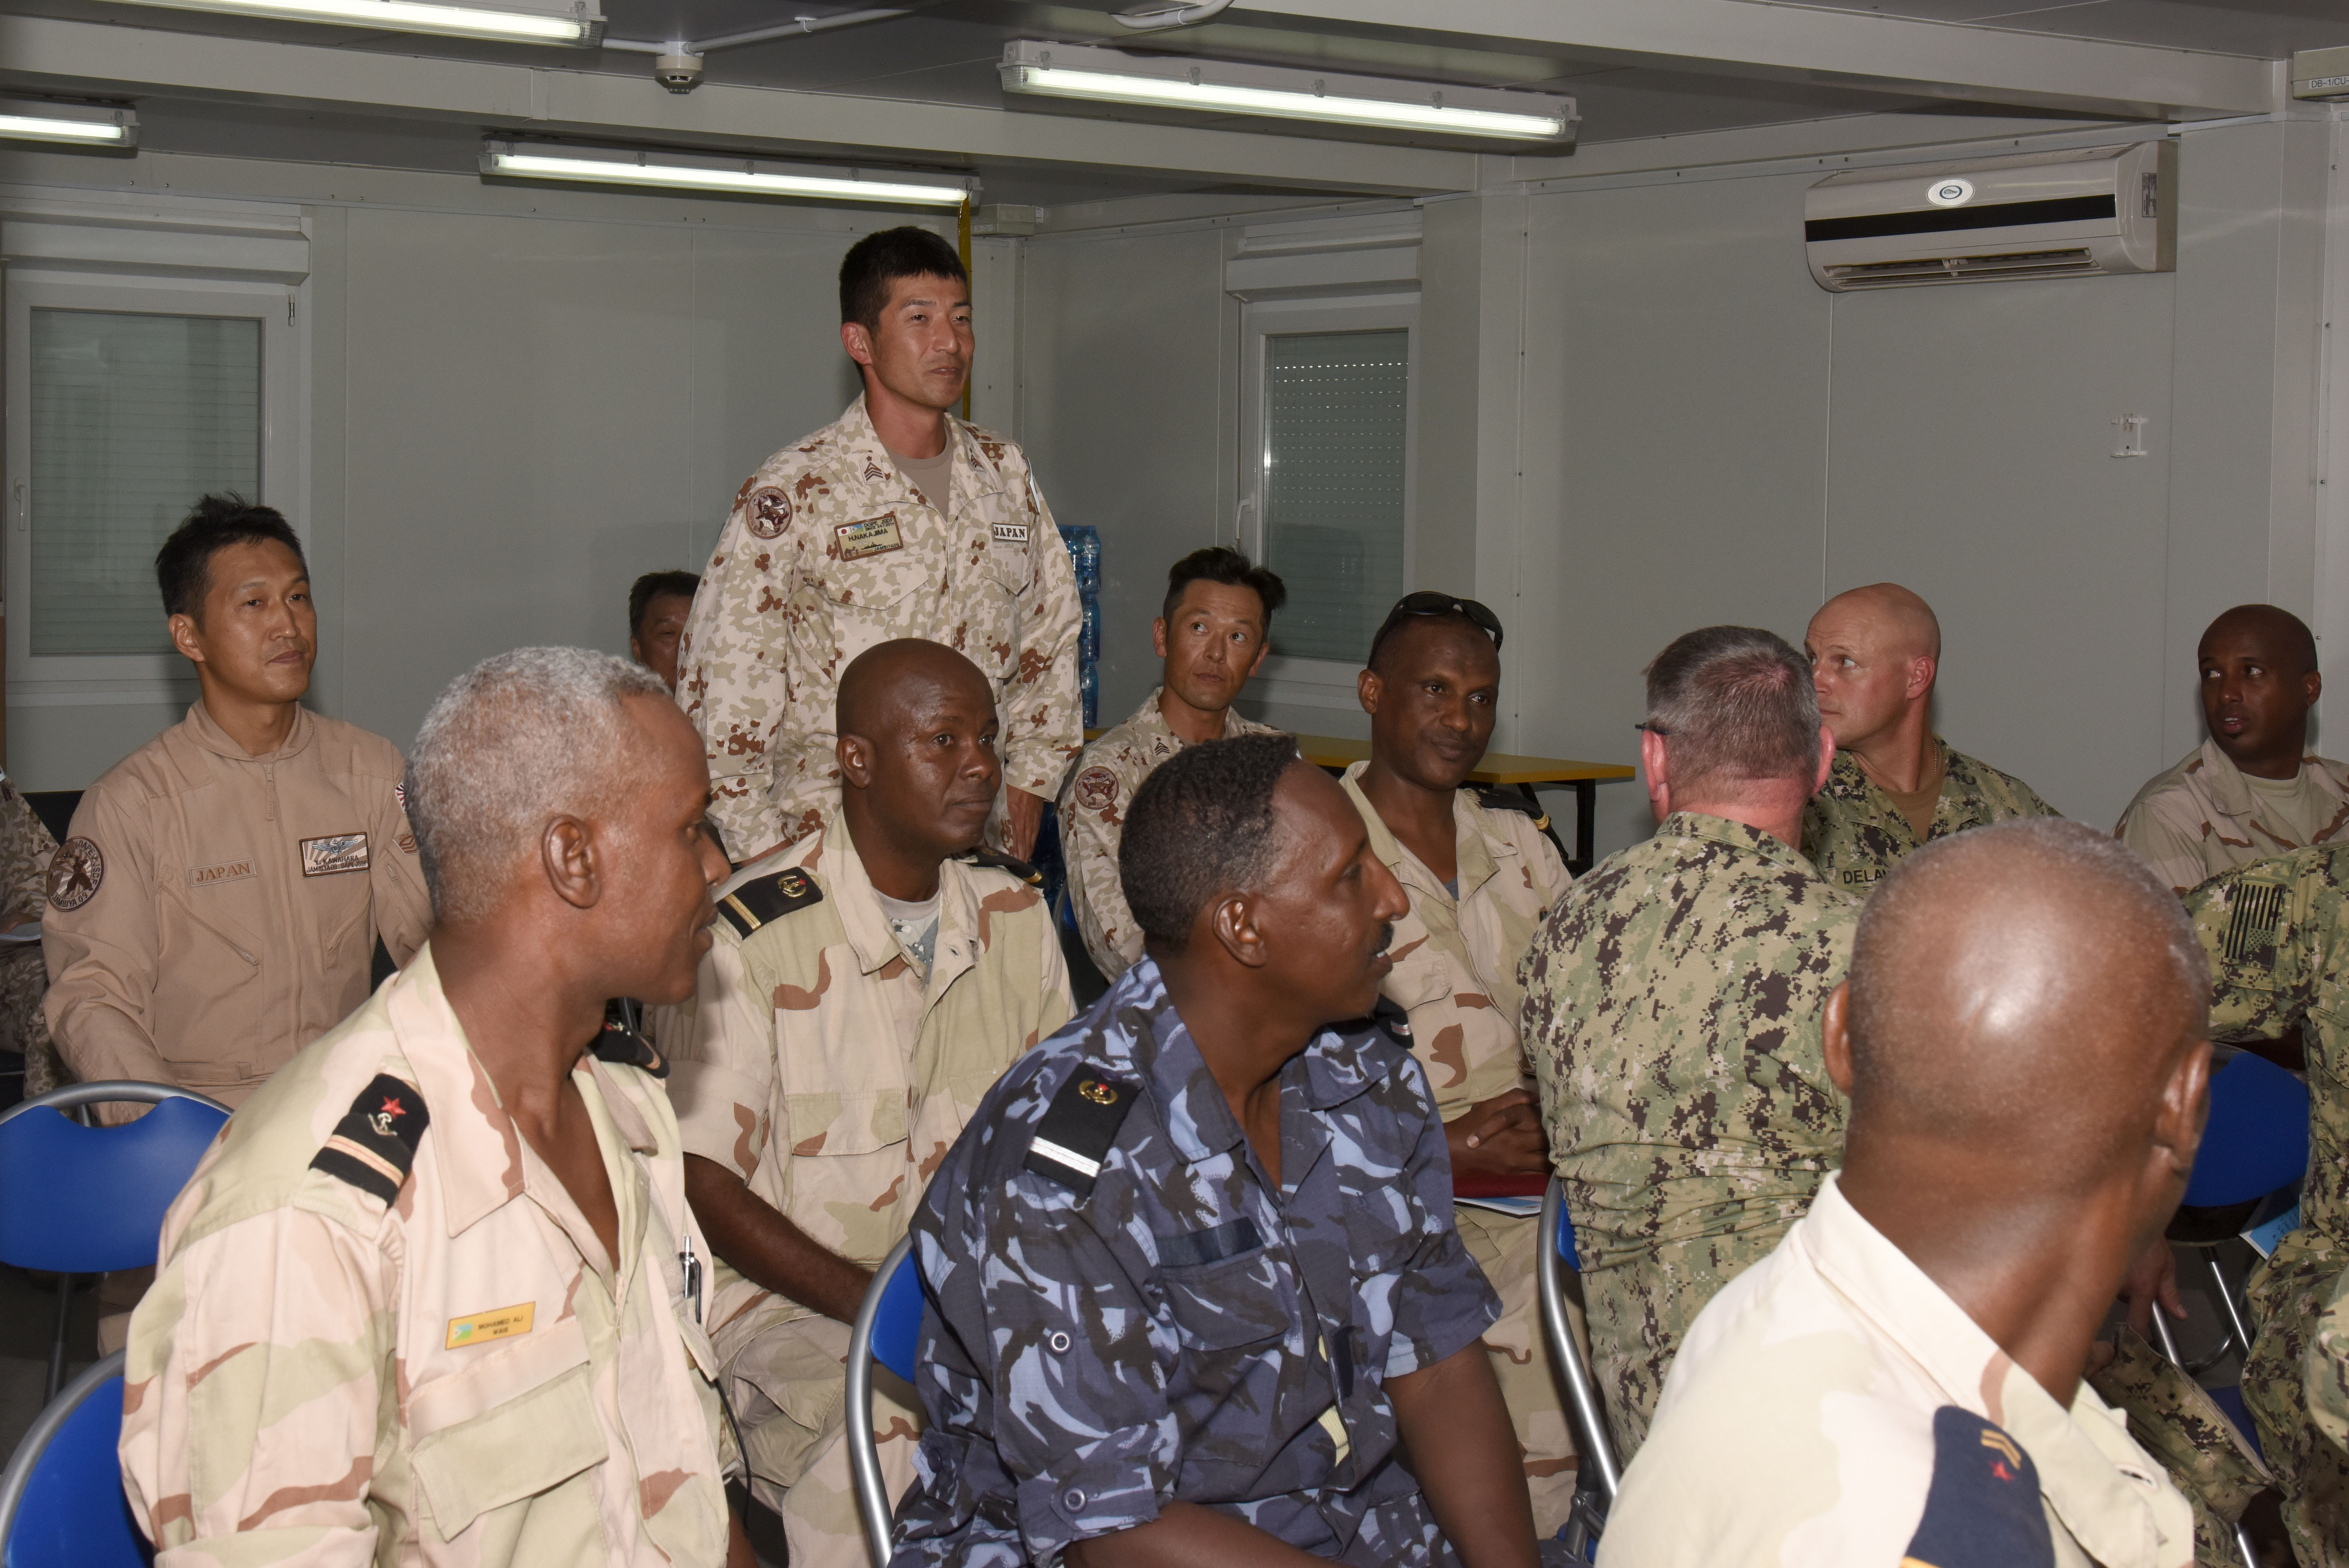 Japan Ground Self-Defense Force Sgt. Maj. Hisashi Nakajima introduces himself to other attendees of the Joint Forces Senior Enlisted Professional Development Course at the Japan base in Djibouti, Nov. 24, 2015. Members from Japan, Djibouti and the U.S. gathered to learn about Japanese history, culture and mission to help attendees better understand their multicultural allies. (U.S. Air Force photo by Staff Sgt. Victoria Sneed)